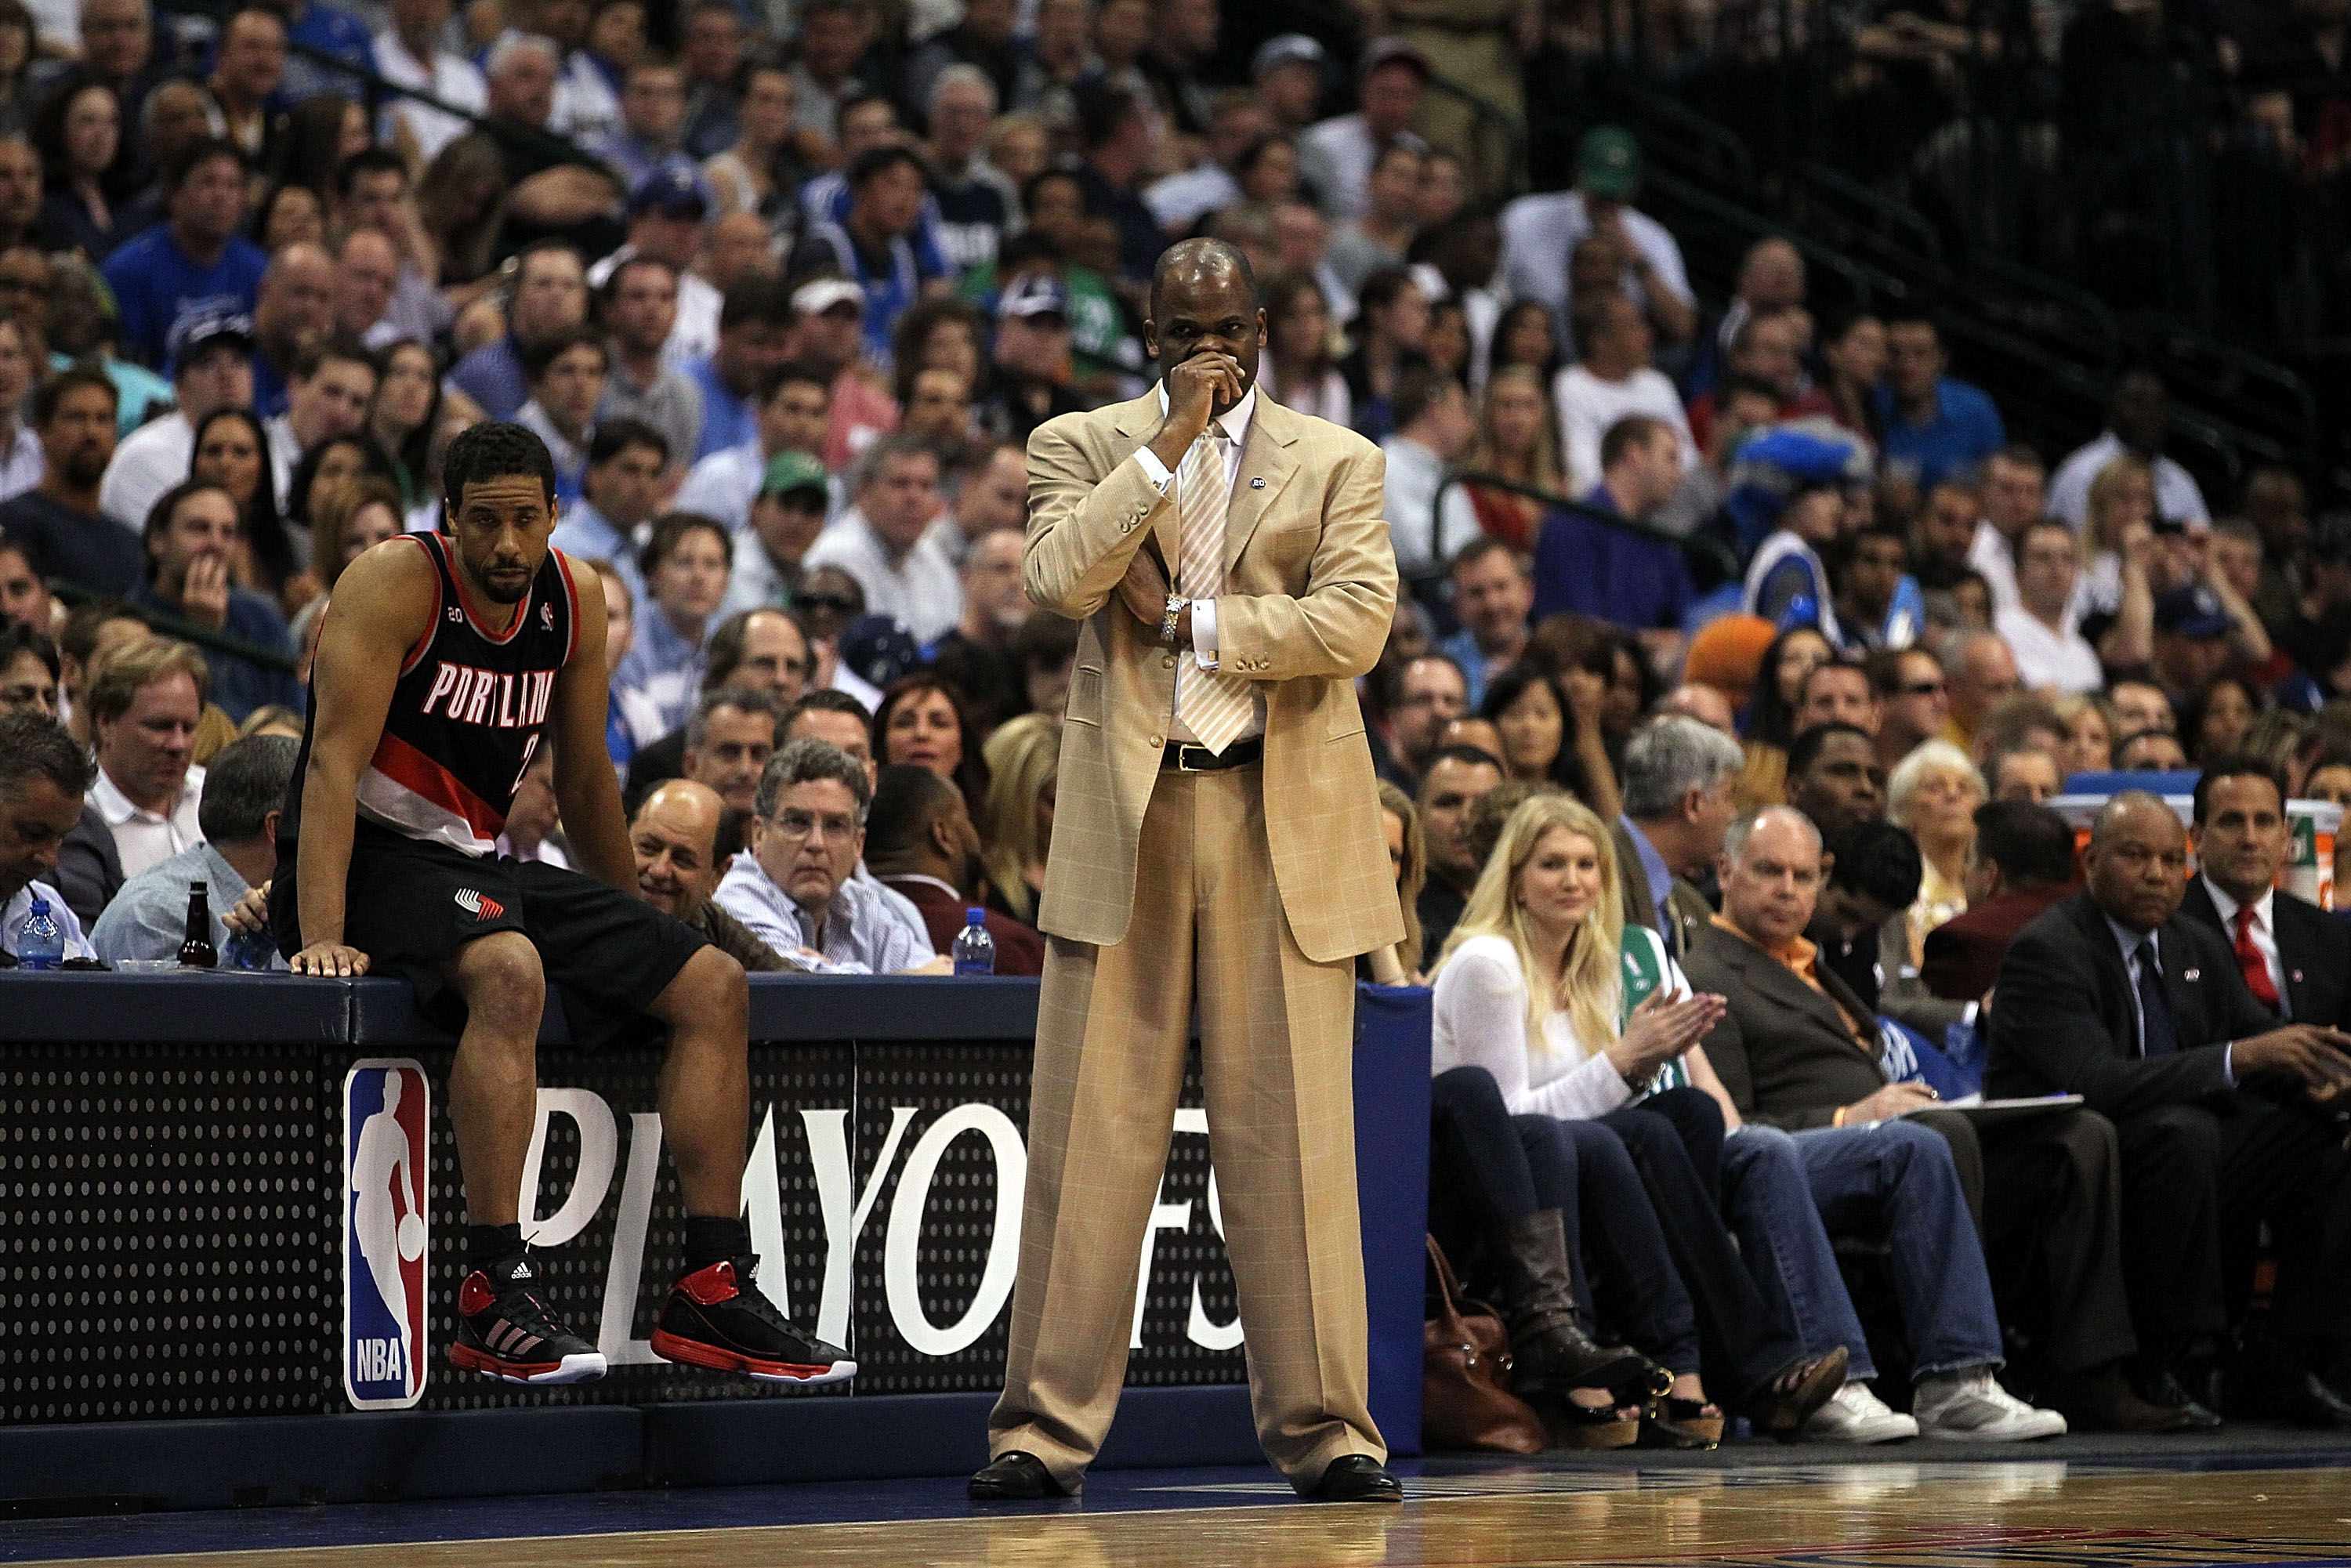 DALLAS, TX - APRIL 25:  Head coach Nate McMillan and Andre Miller #24 of the Portland Trail Blazers during a loss against the Dallas Mavericks in Game Five of the Western Conference Quarterfinals during the 2011 NBA Playoffs on April 25, 2011 at American